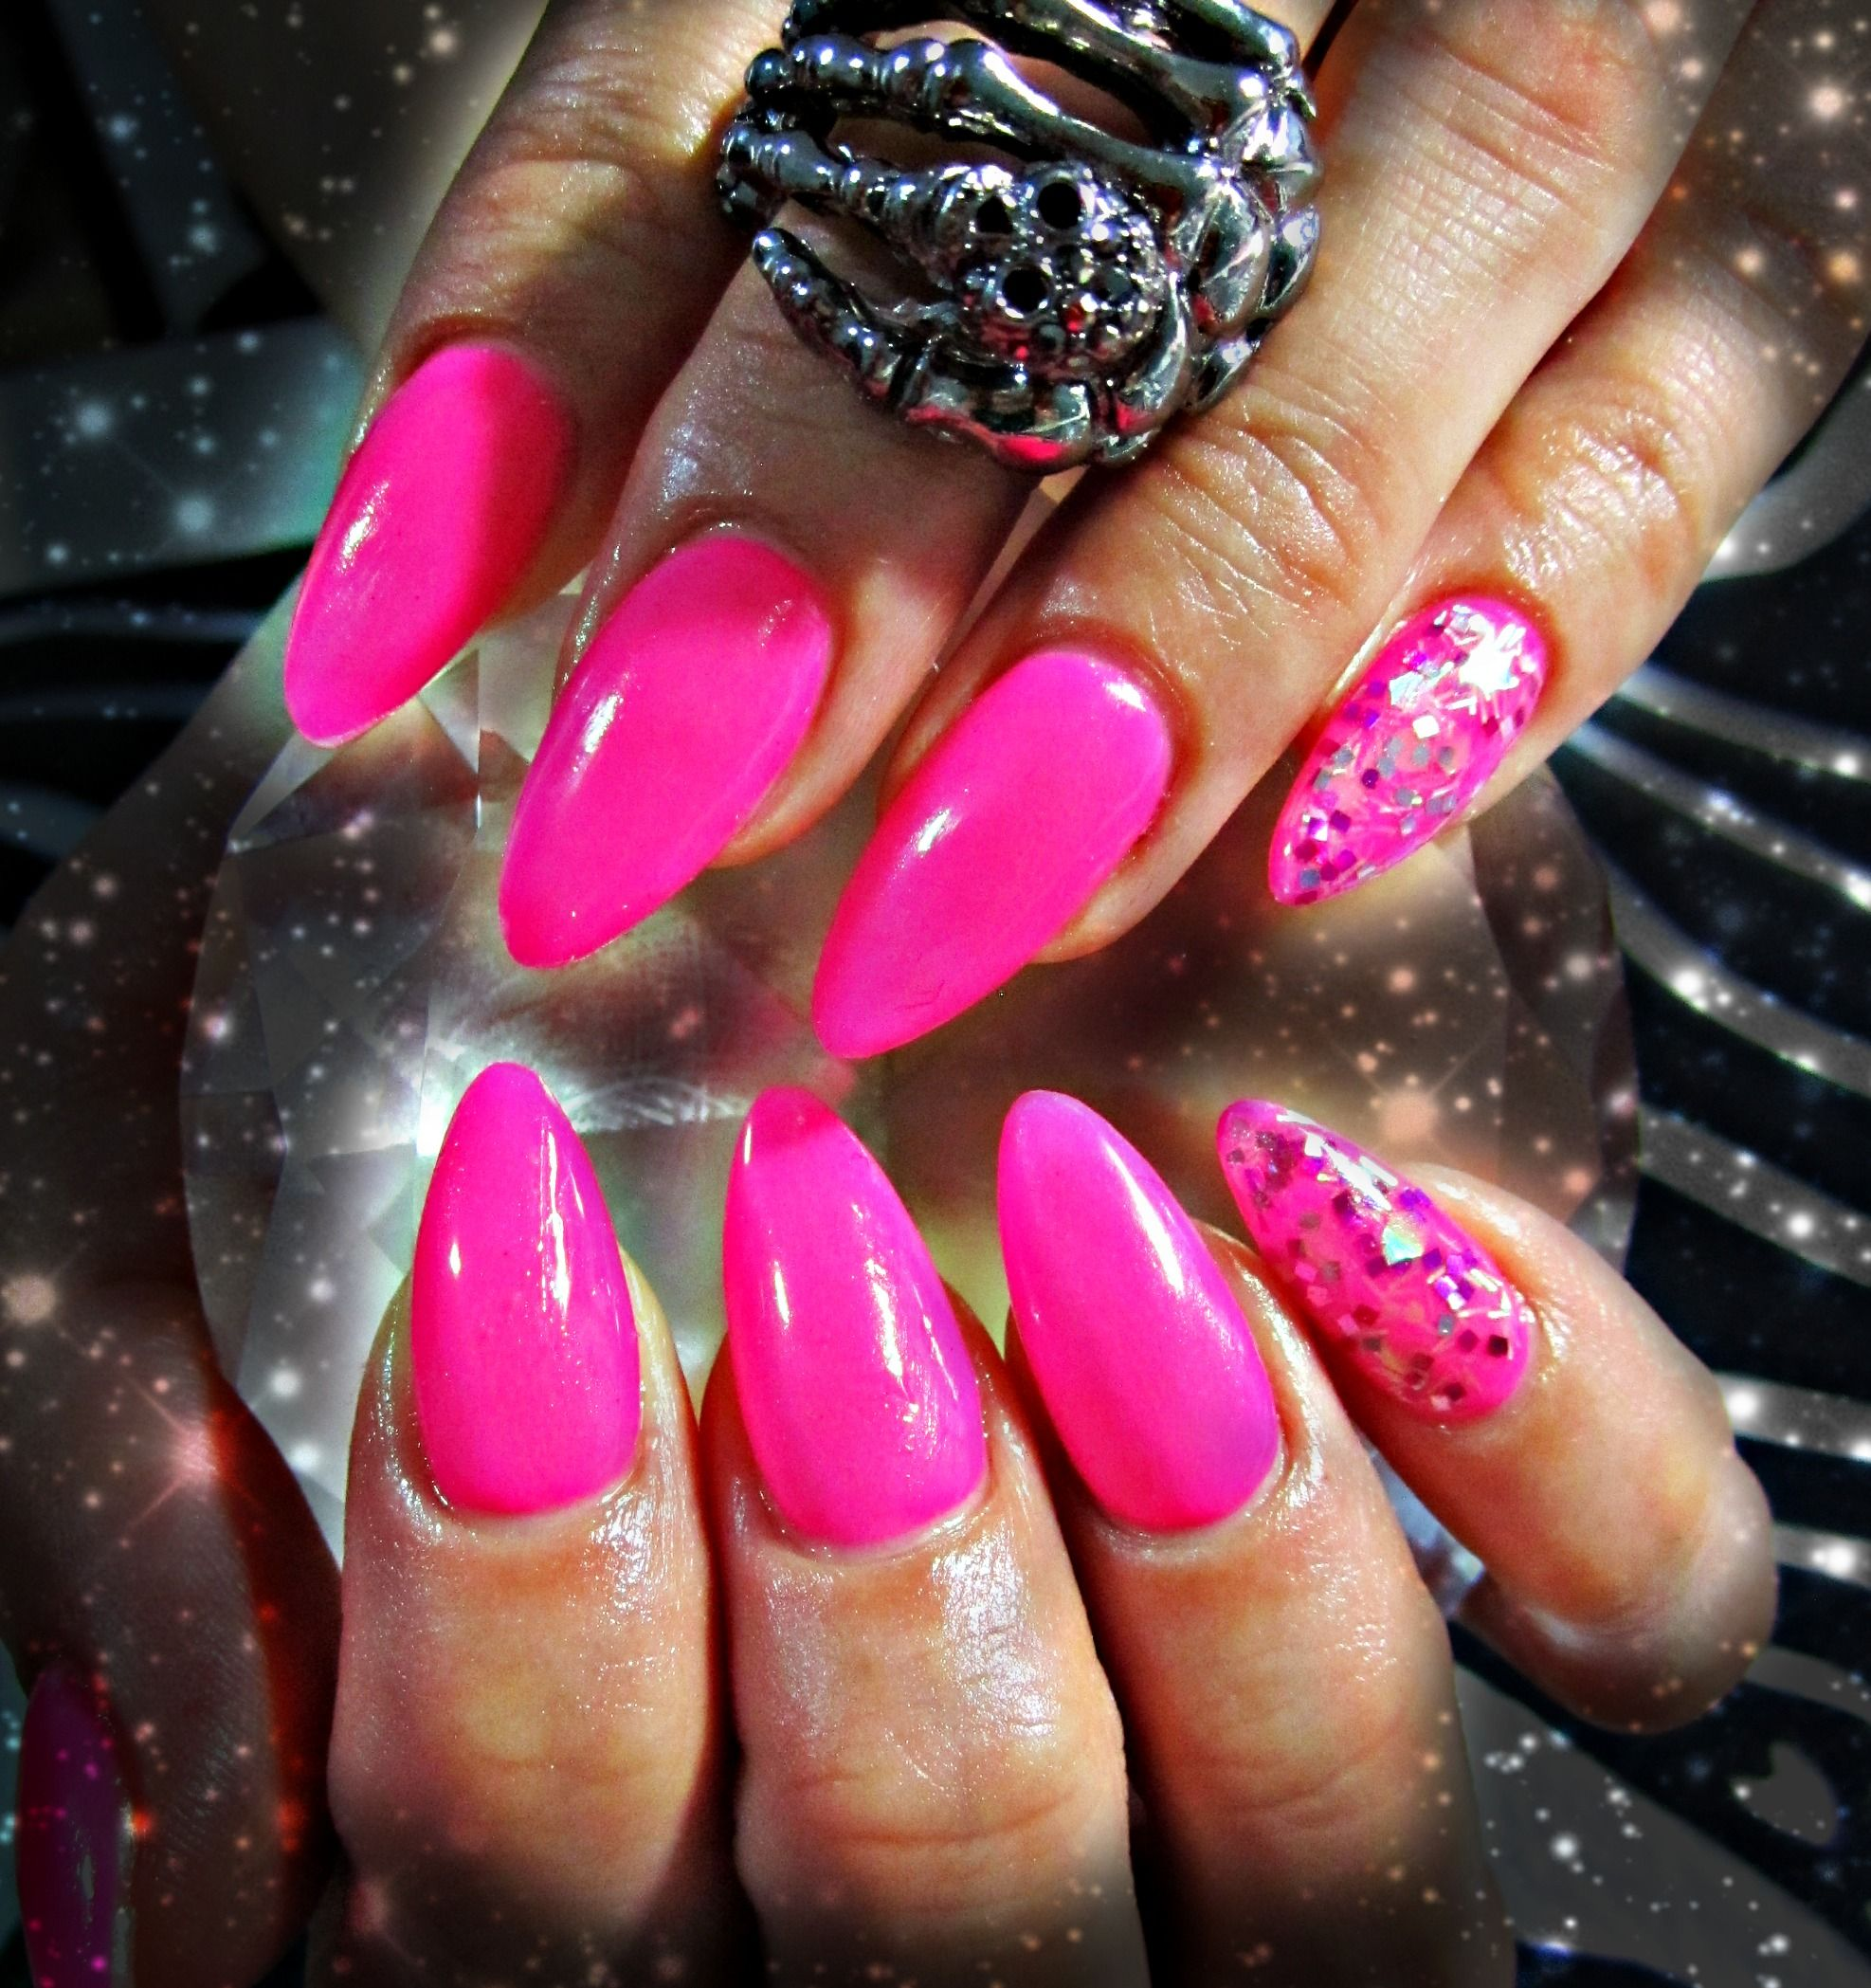 Neon pink acrylic nails | Crafts/beauty | Pinterest | Pink acrylic ...